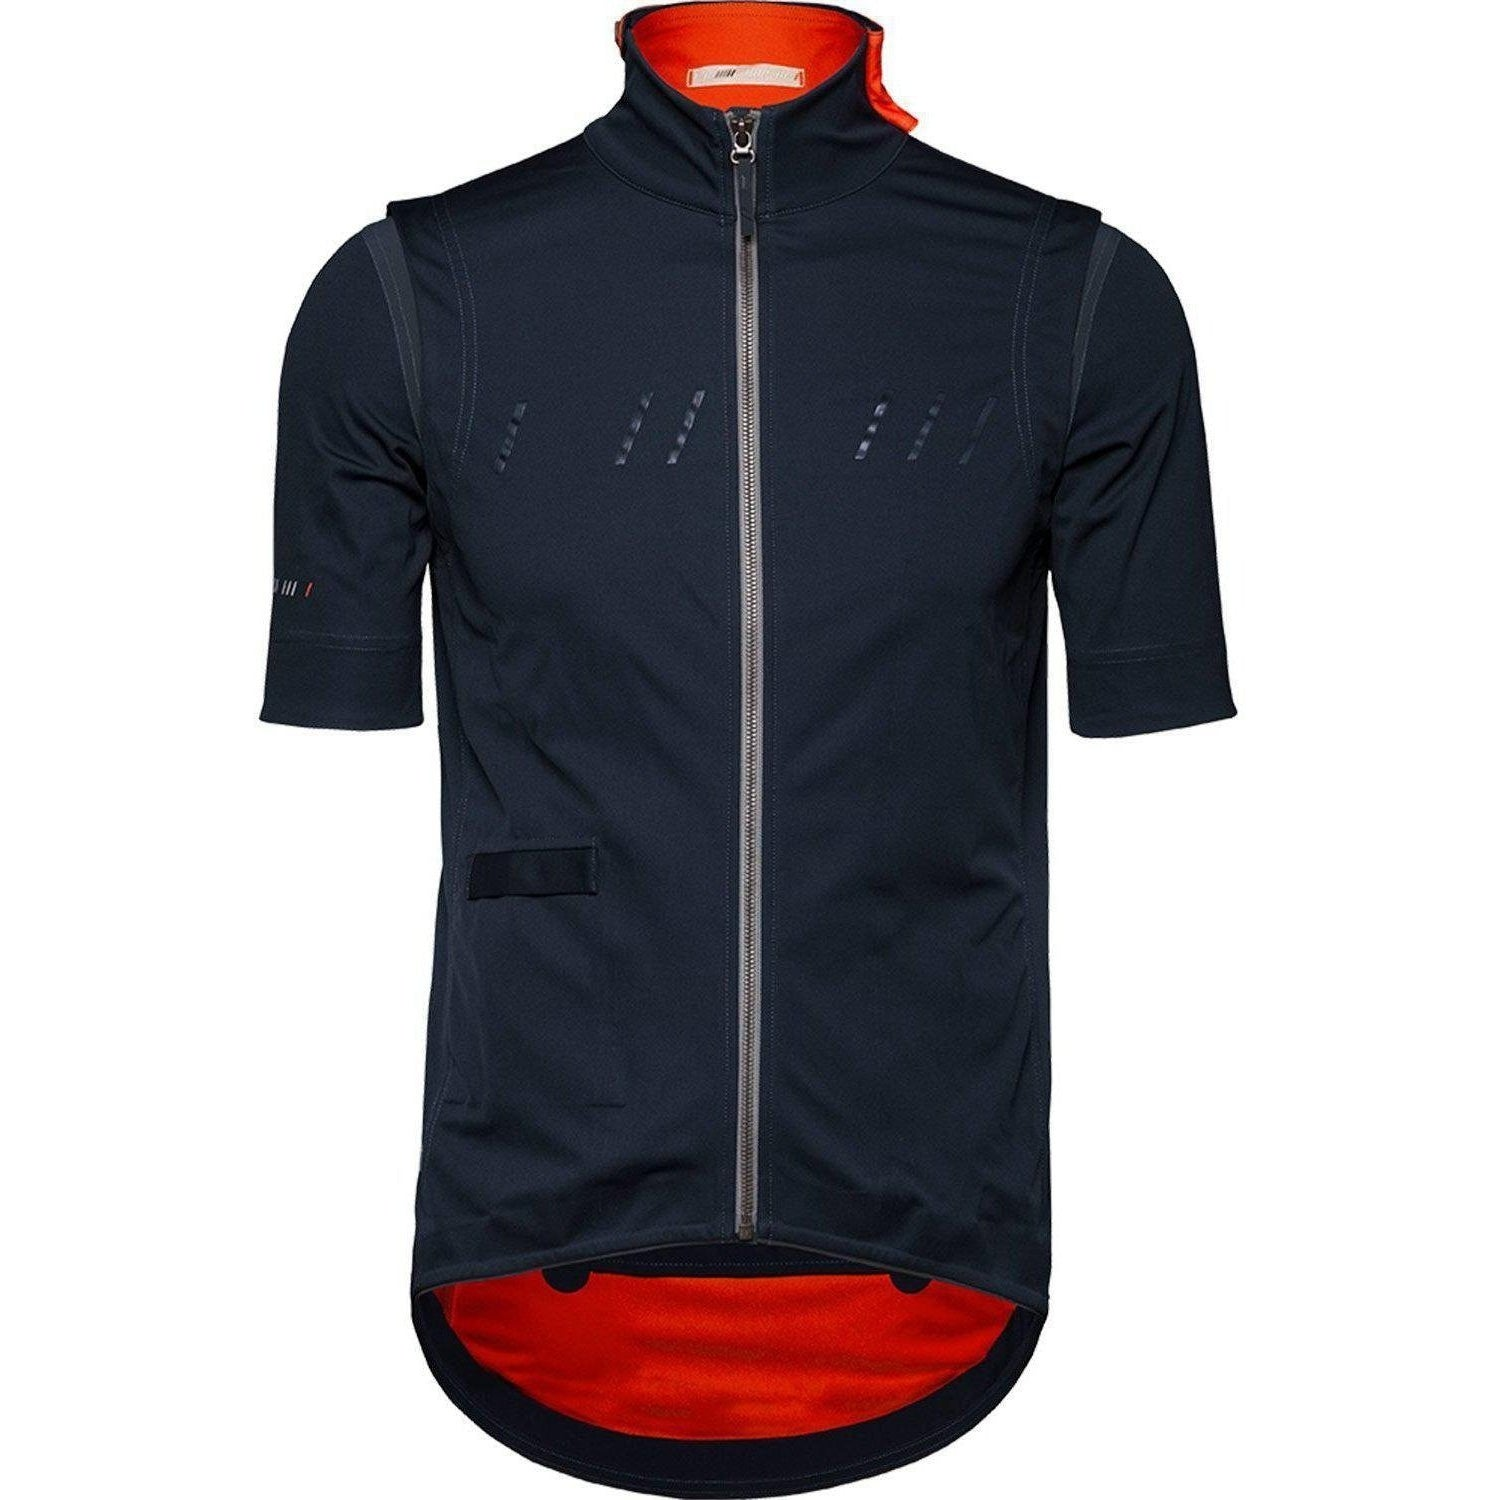 Chpt3 Rocka 1.61 Short Sleeve Jacket